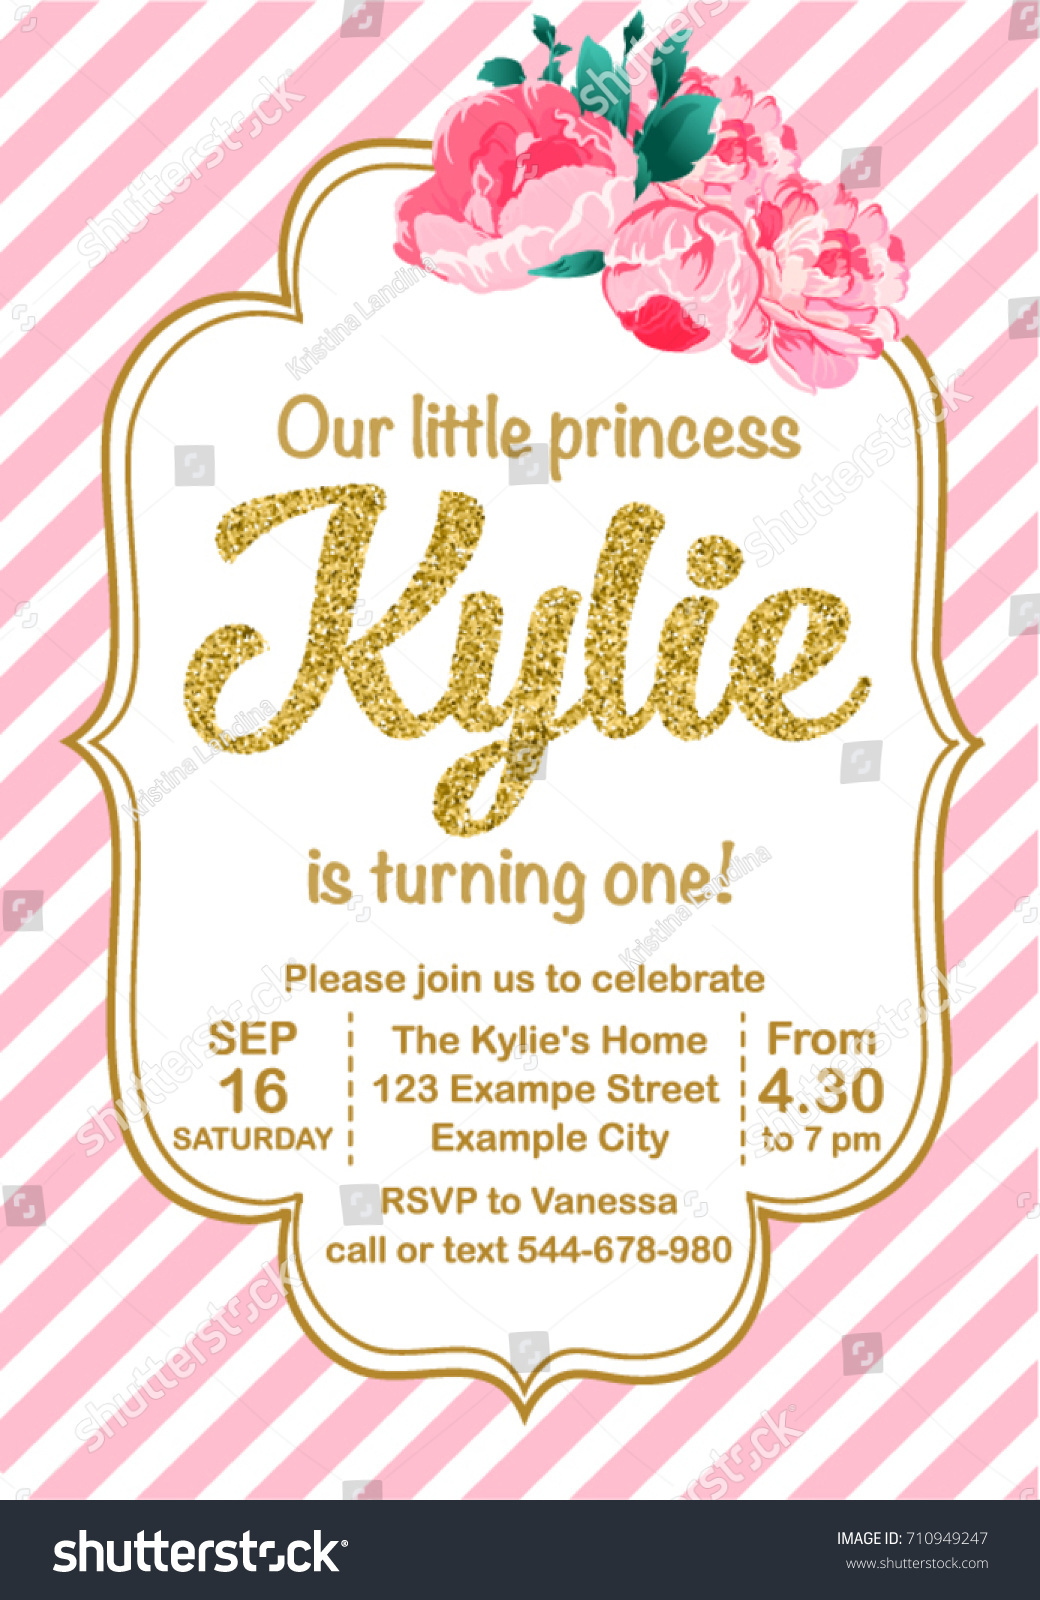 First Birthday Party Invitation Girl Kylie Stock Vector (Royalty ...